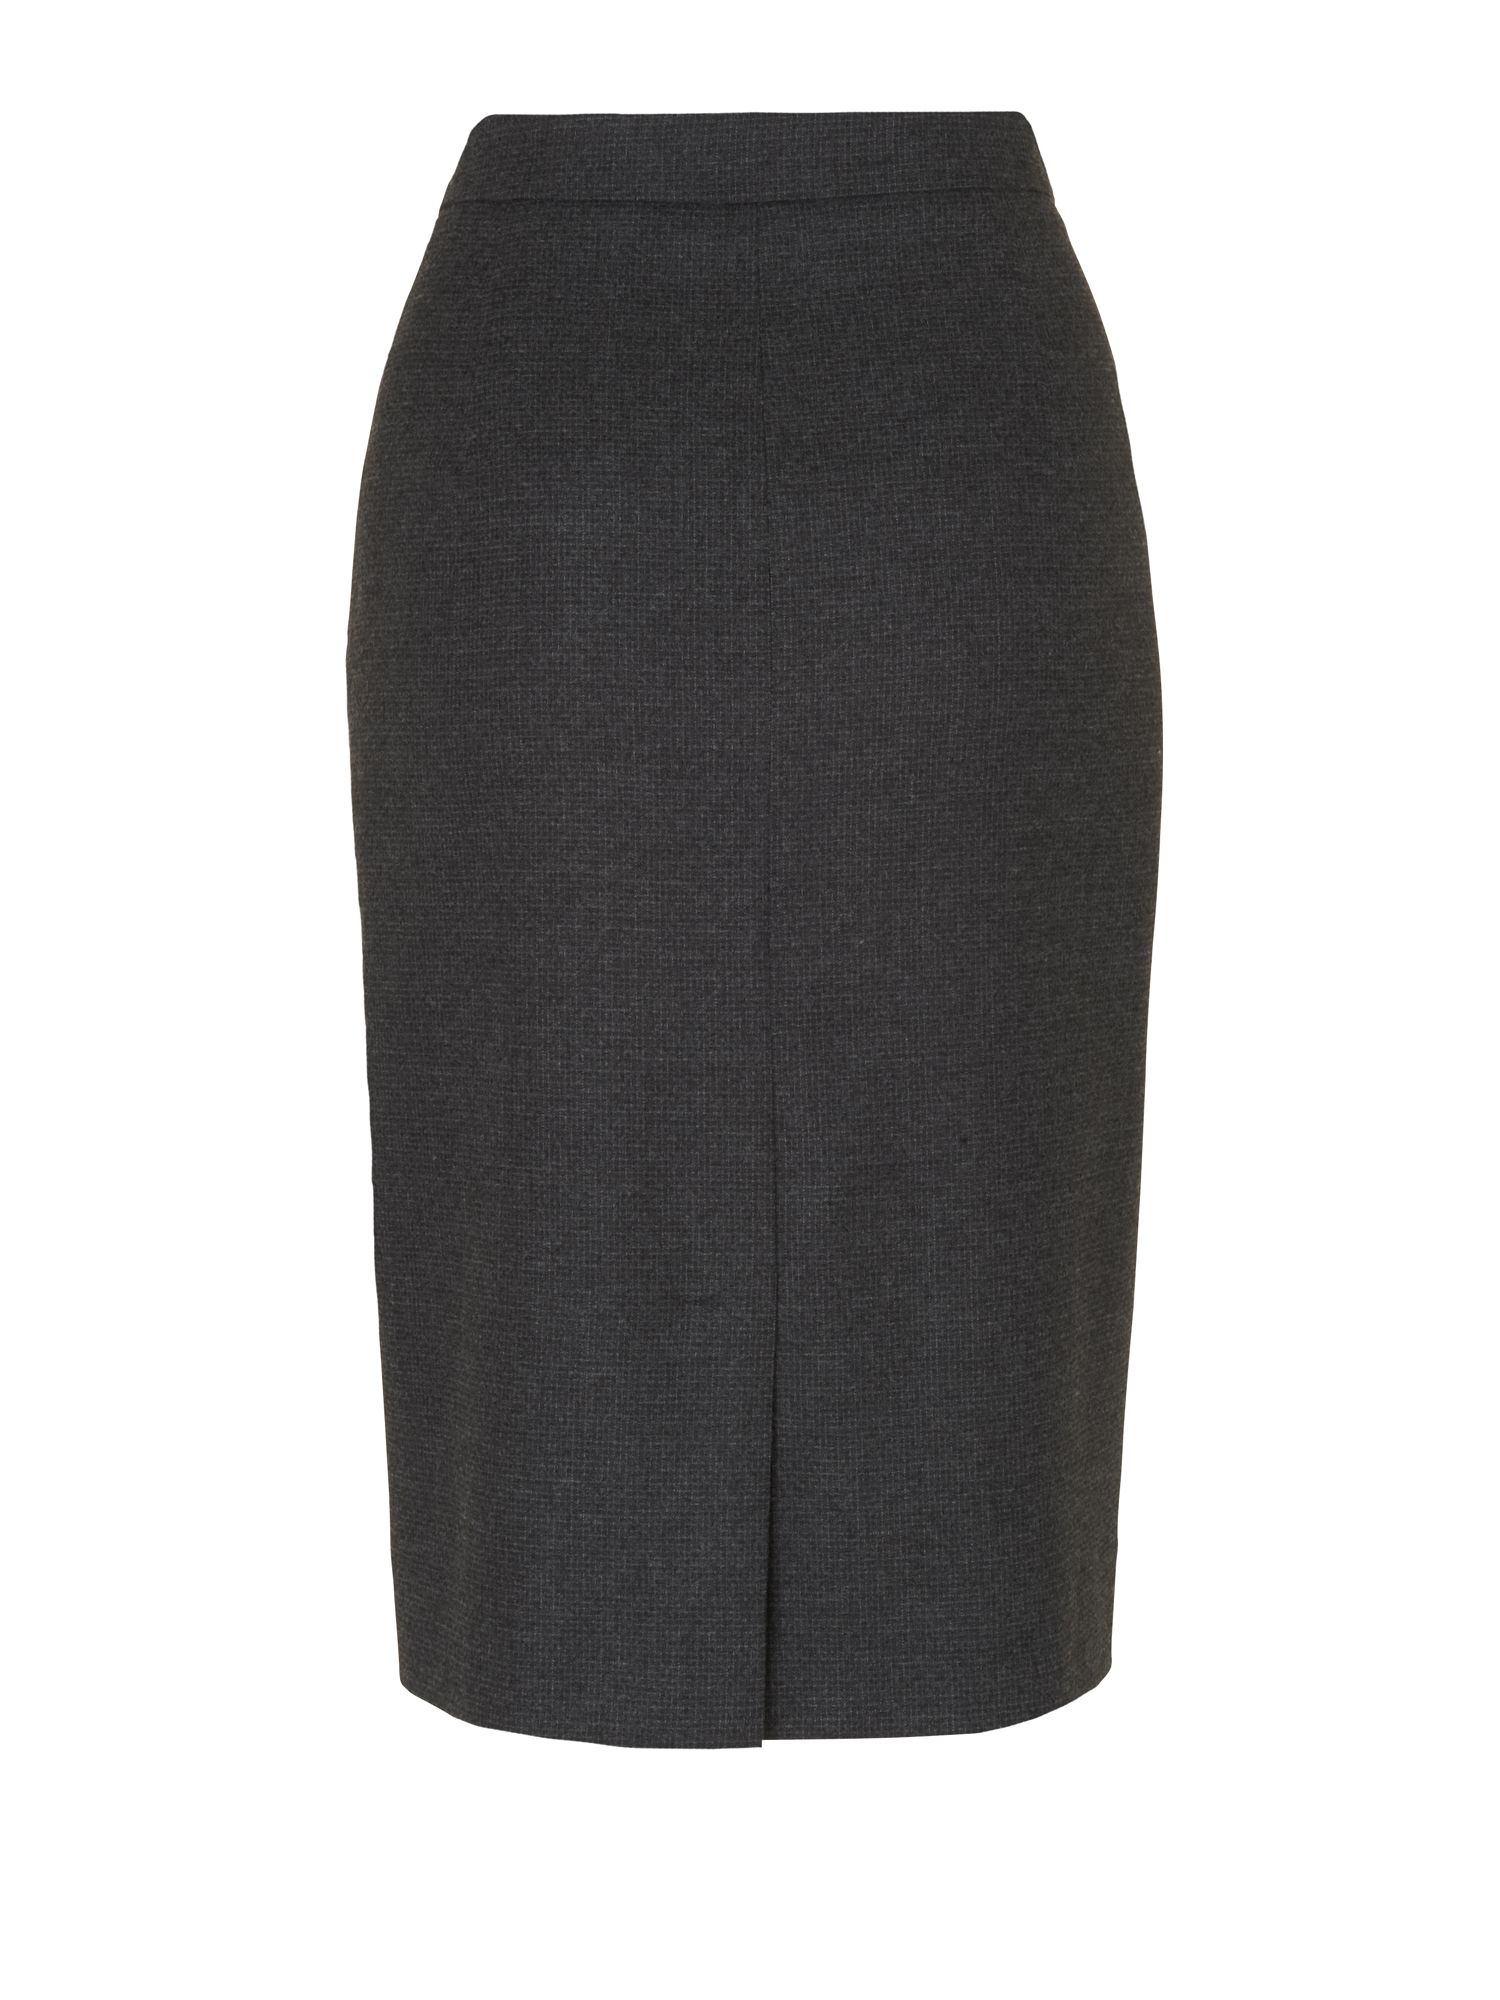 Micro check wool pencil skirt